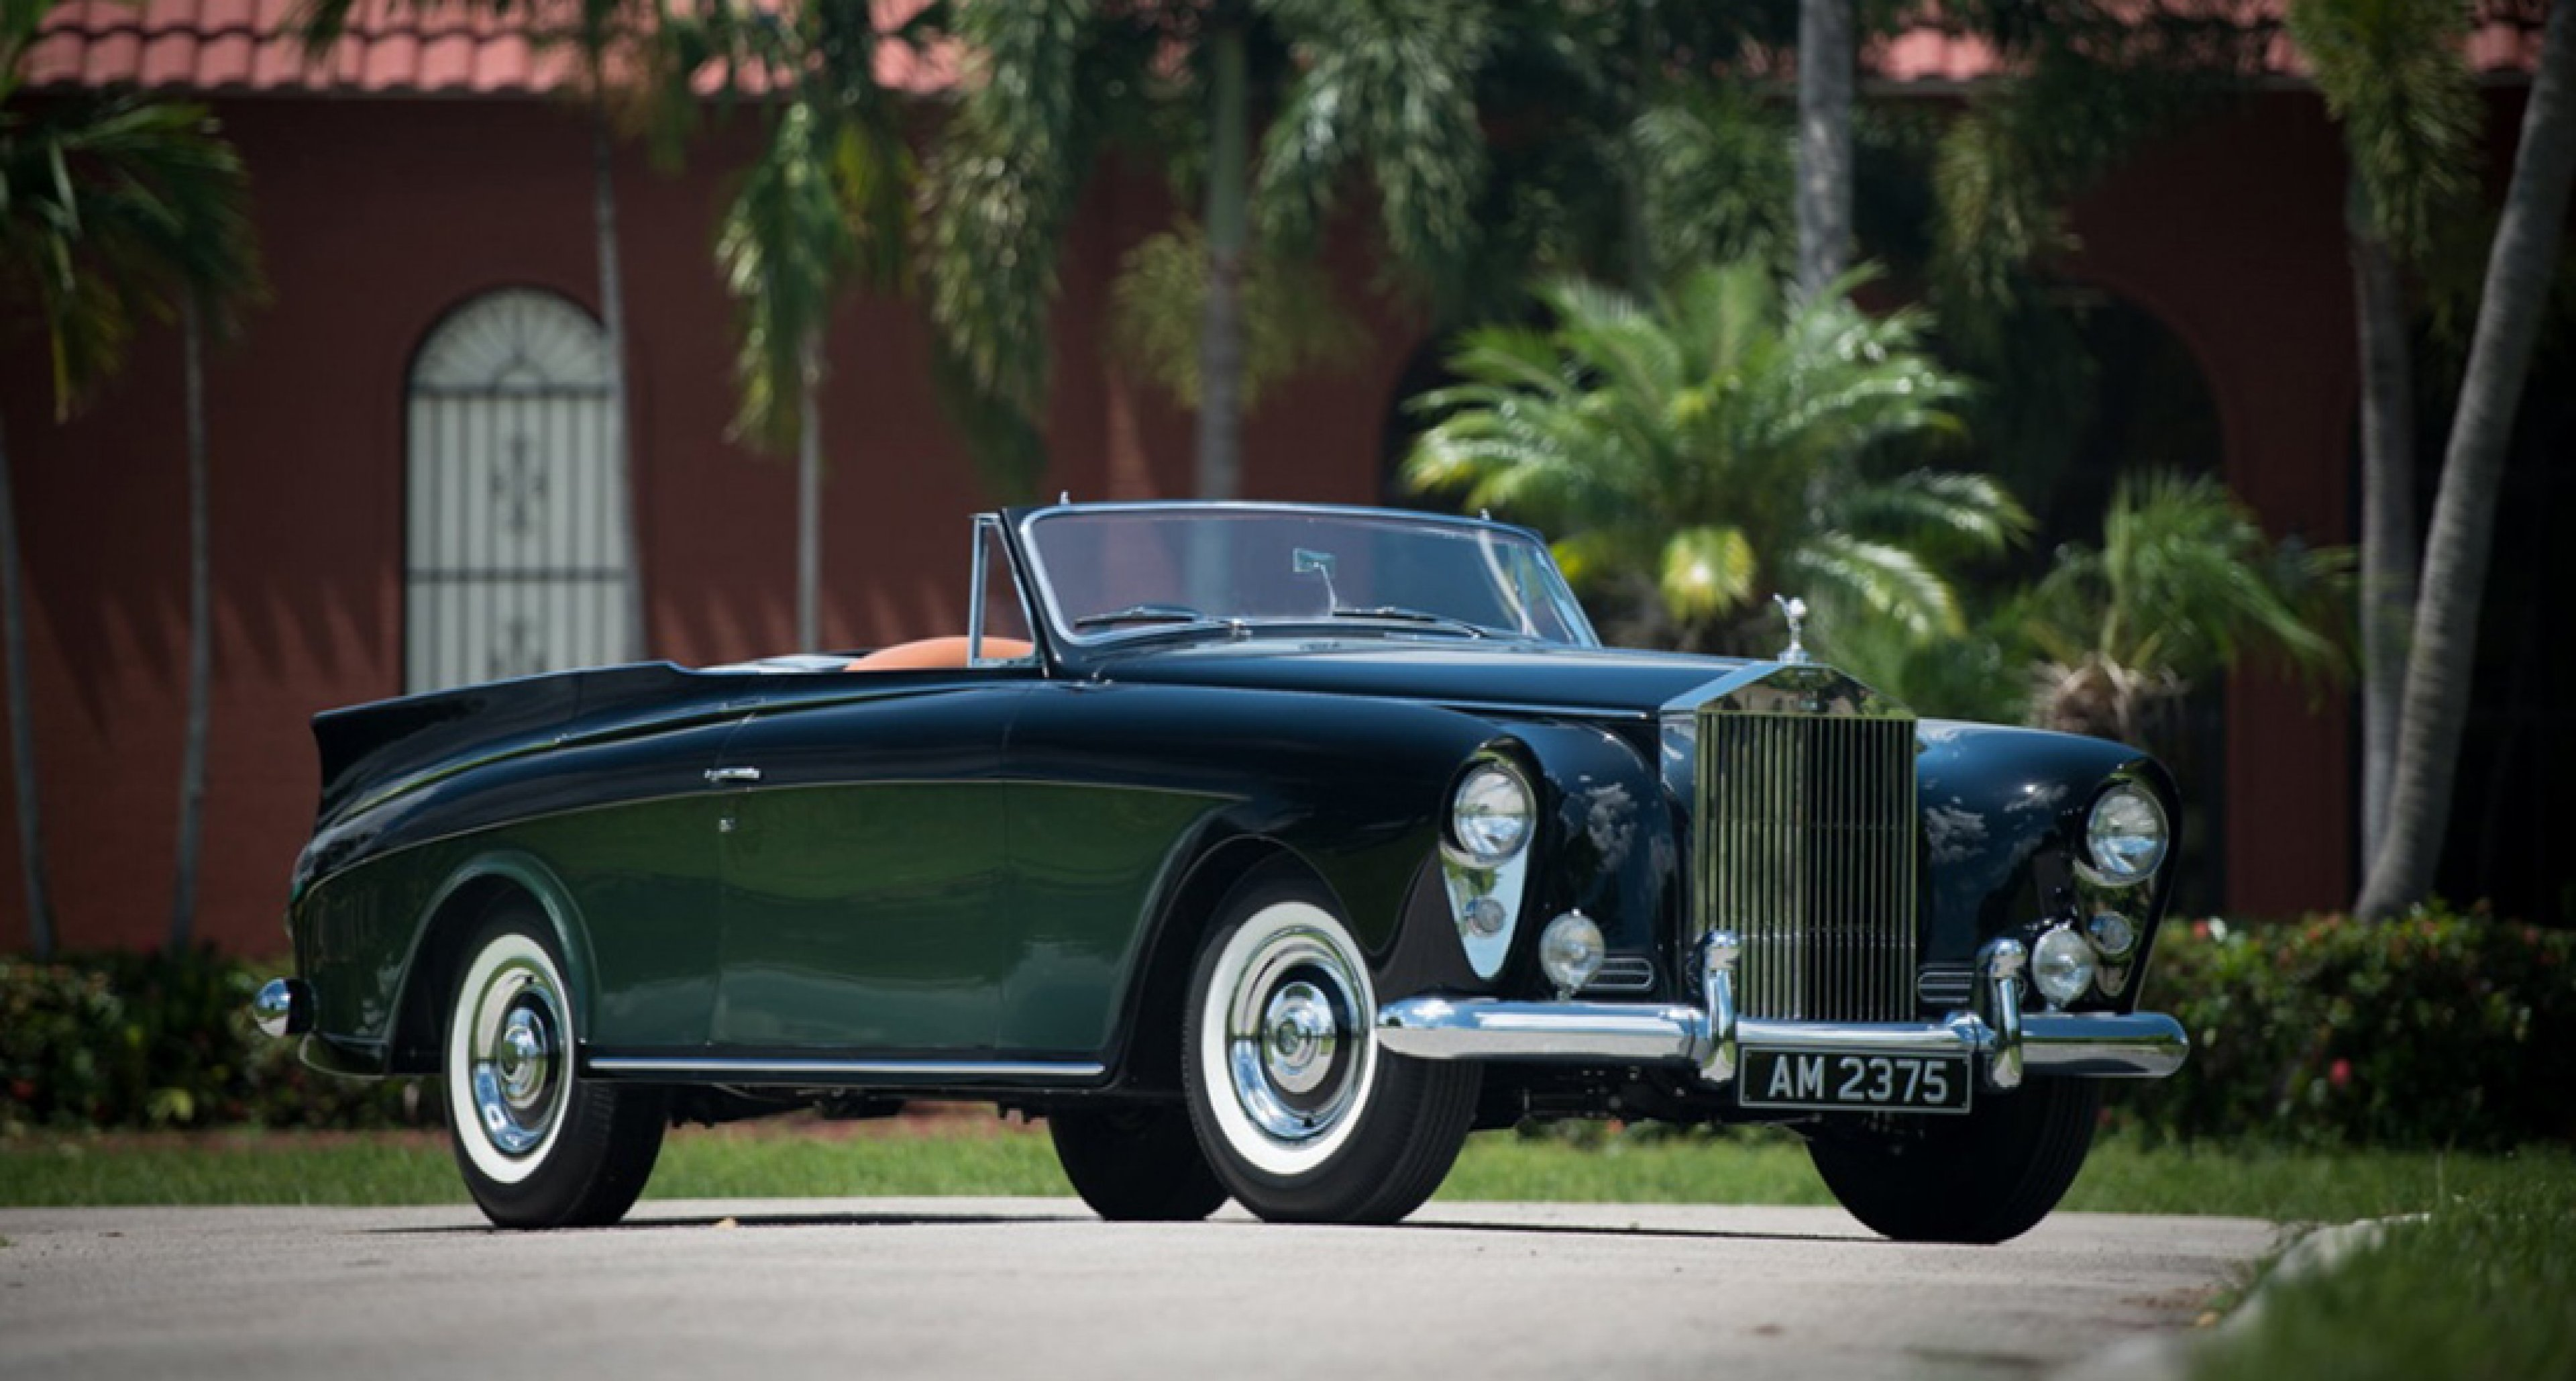 Rolls-Royce Silver Cloud 'Honeymoon Express'